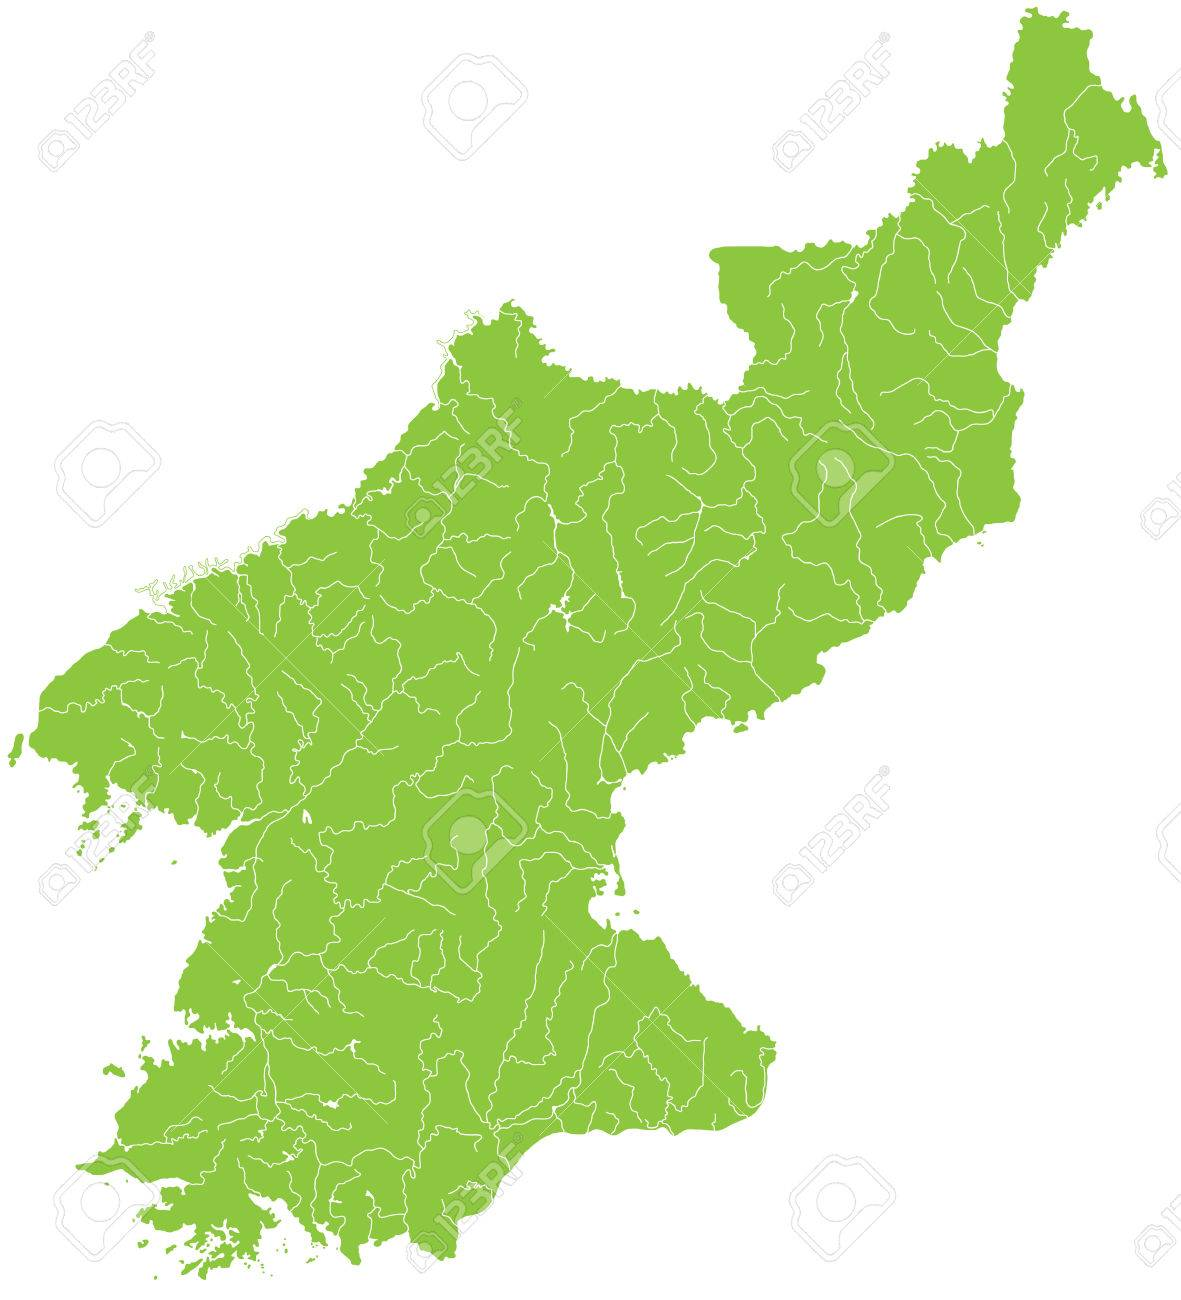 Large and detailed map of North Korea with all rivers and lakes. on map of brazil rivers, map of southeast asia rivers, map of arizona rivers, map of japan rivers, map of canada rivers, map of mali rivers, map of iraq rivers, map of mexico rivers, map of france rivers, map of south asia rivers, map of united states rivers, map of spain rivers, map of eritrea rivers, map of azerbaijan rivers, map of trinidad and tobago rivers, map of germany rivers, map of mauritius rivers, map of vietnam rivers, map of algeria rivers, map of east asia rivers,